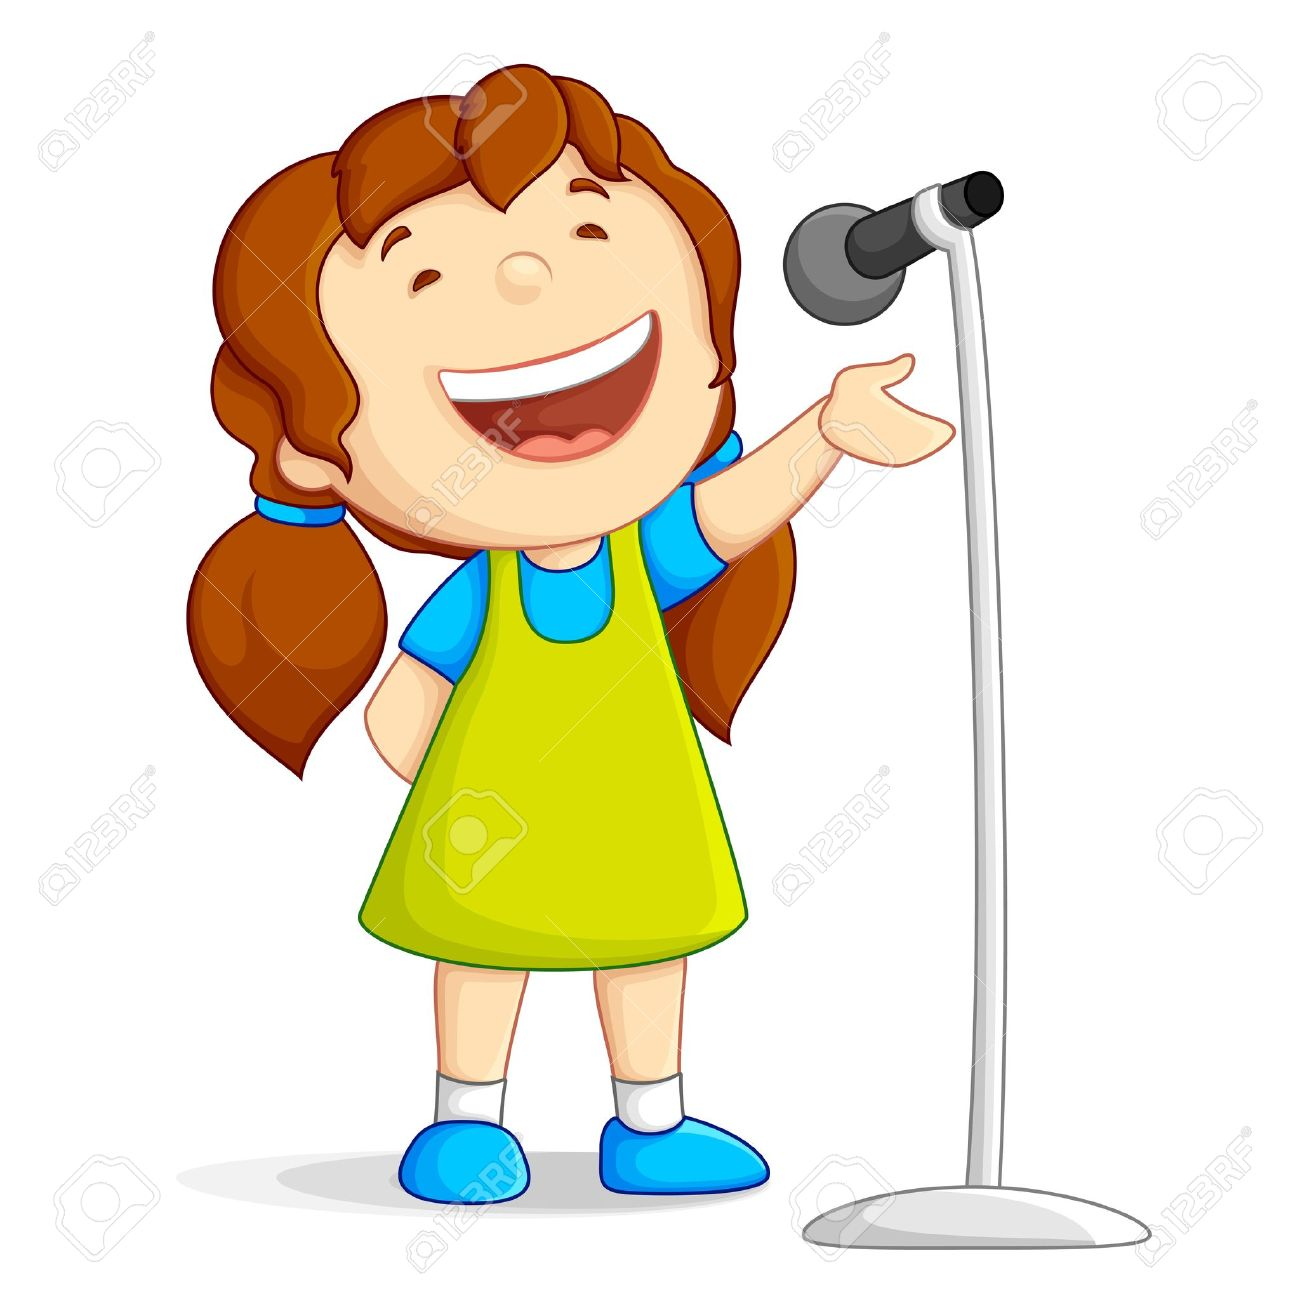 Clipart woman singing image freeuse library Singing Microphone Clipart - Free Clipart image freeuse library